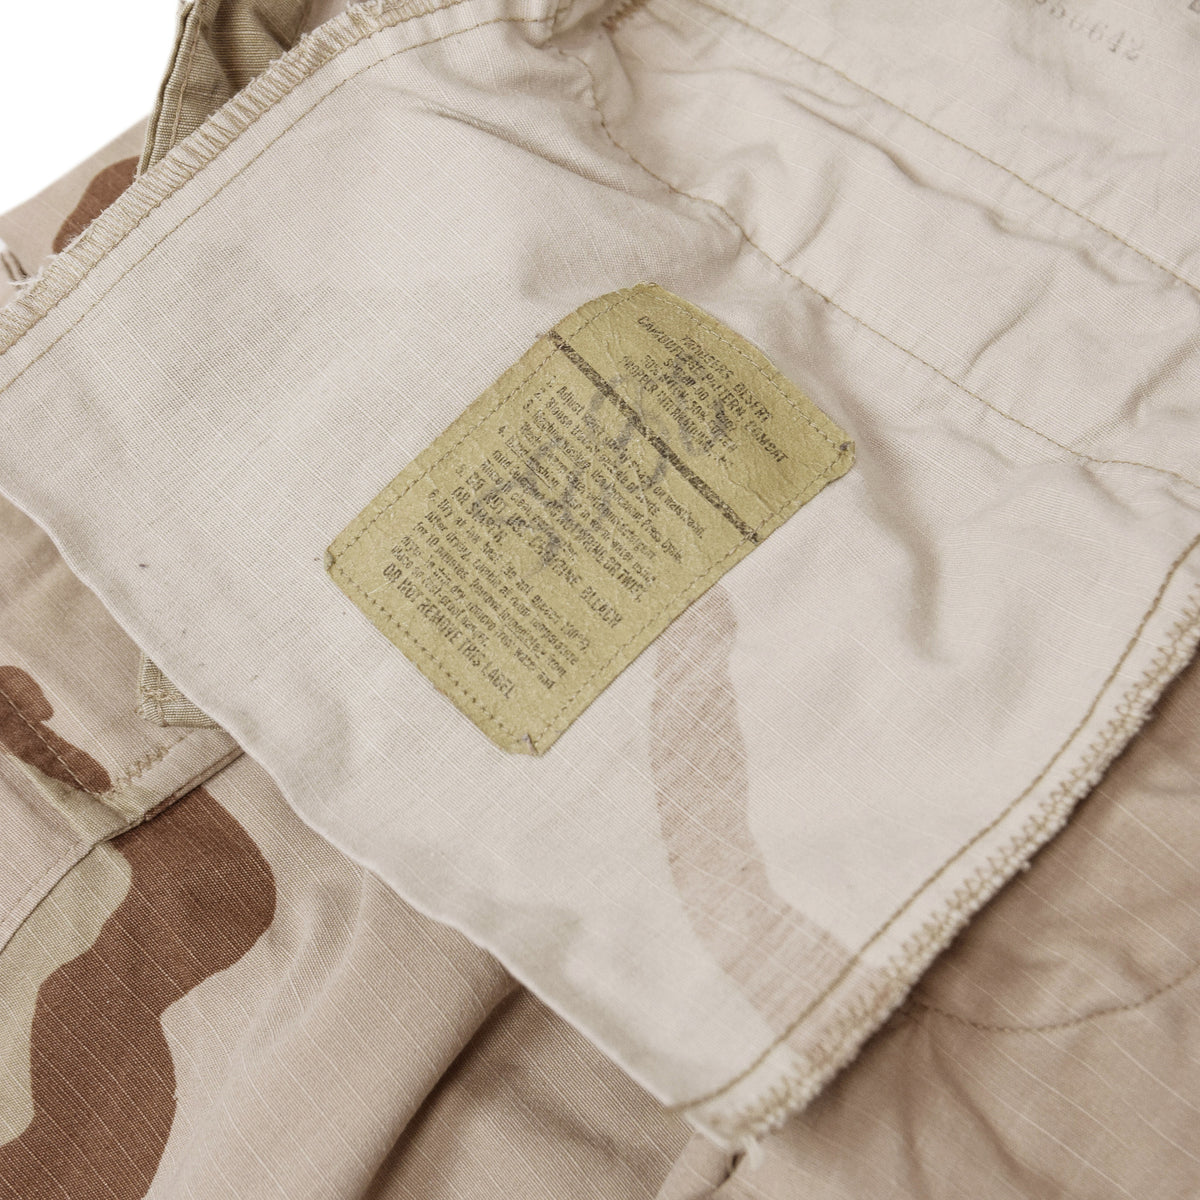 Vintage US Army Desert Camo Ripstop Cargo Combat Field Trousers M Short inner label